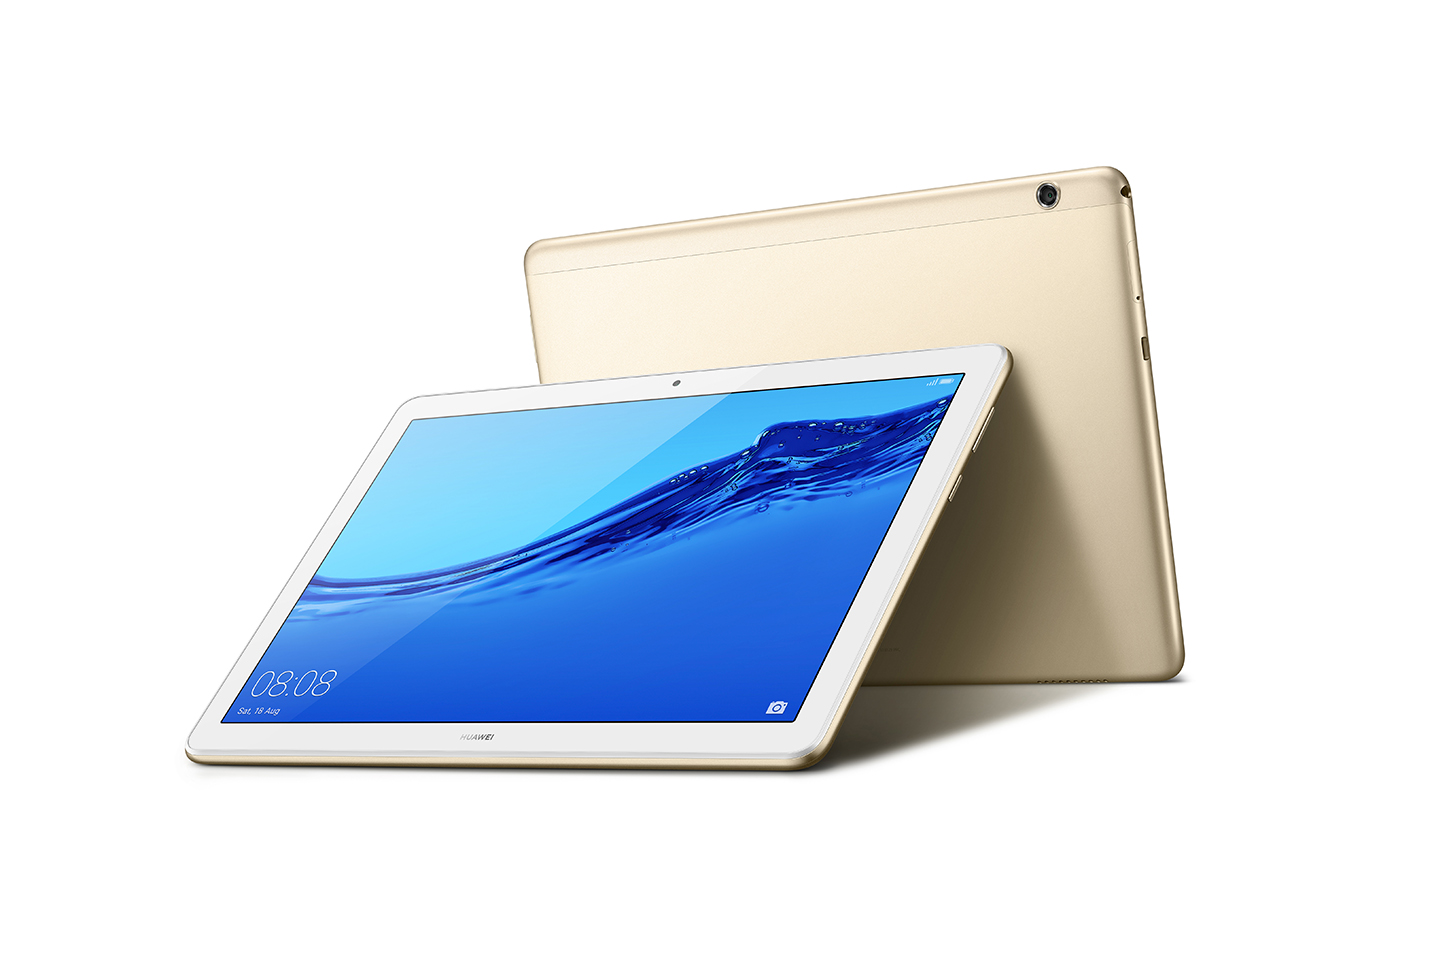 Huawei MediaPad T5 out in stores on Jan 28 for RM999 | The